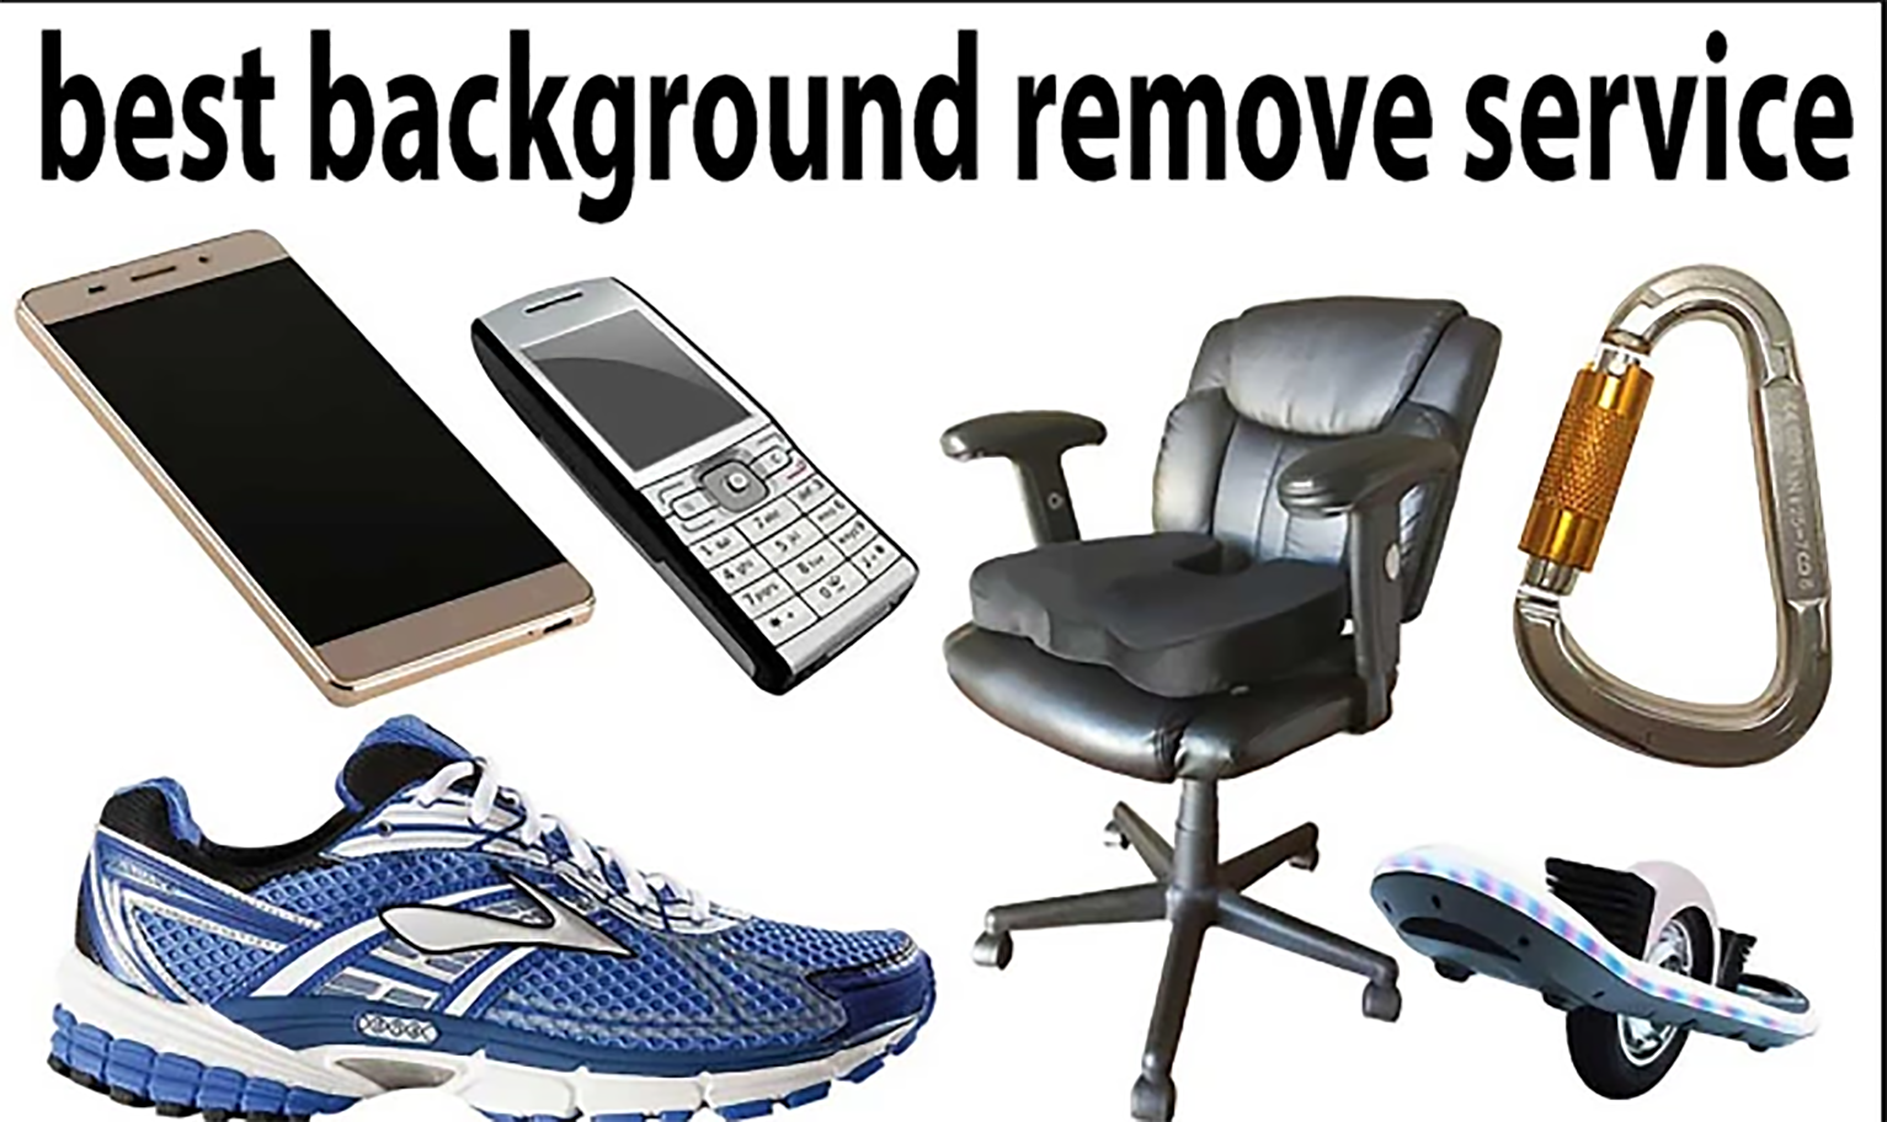 I Will Remove Background From your Images Professionally